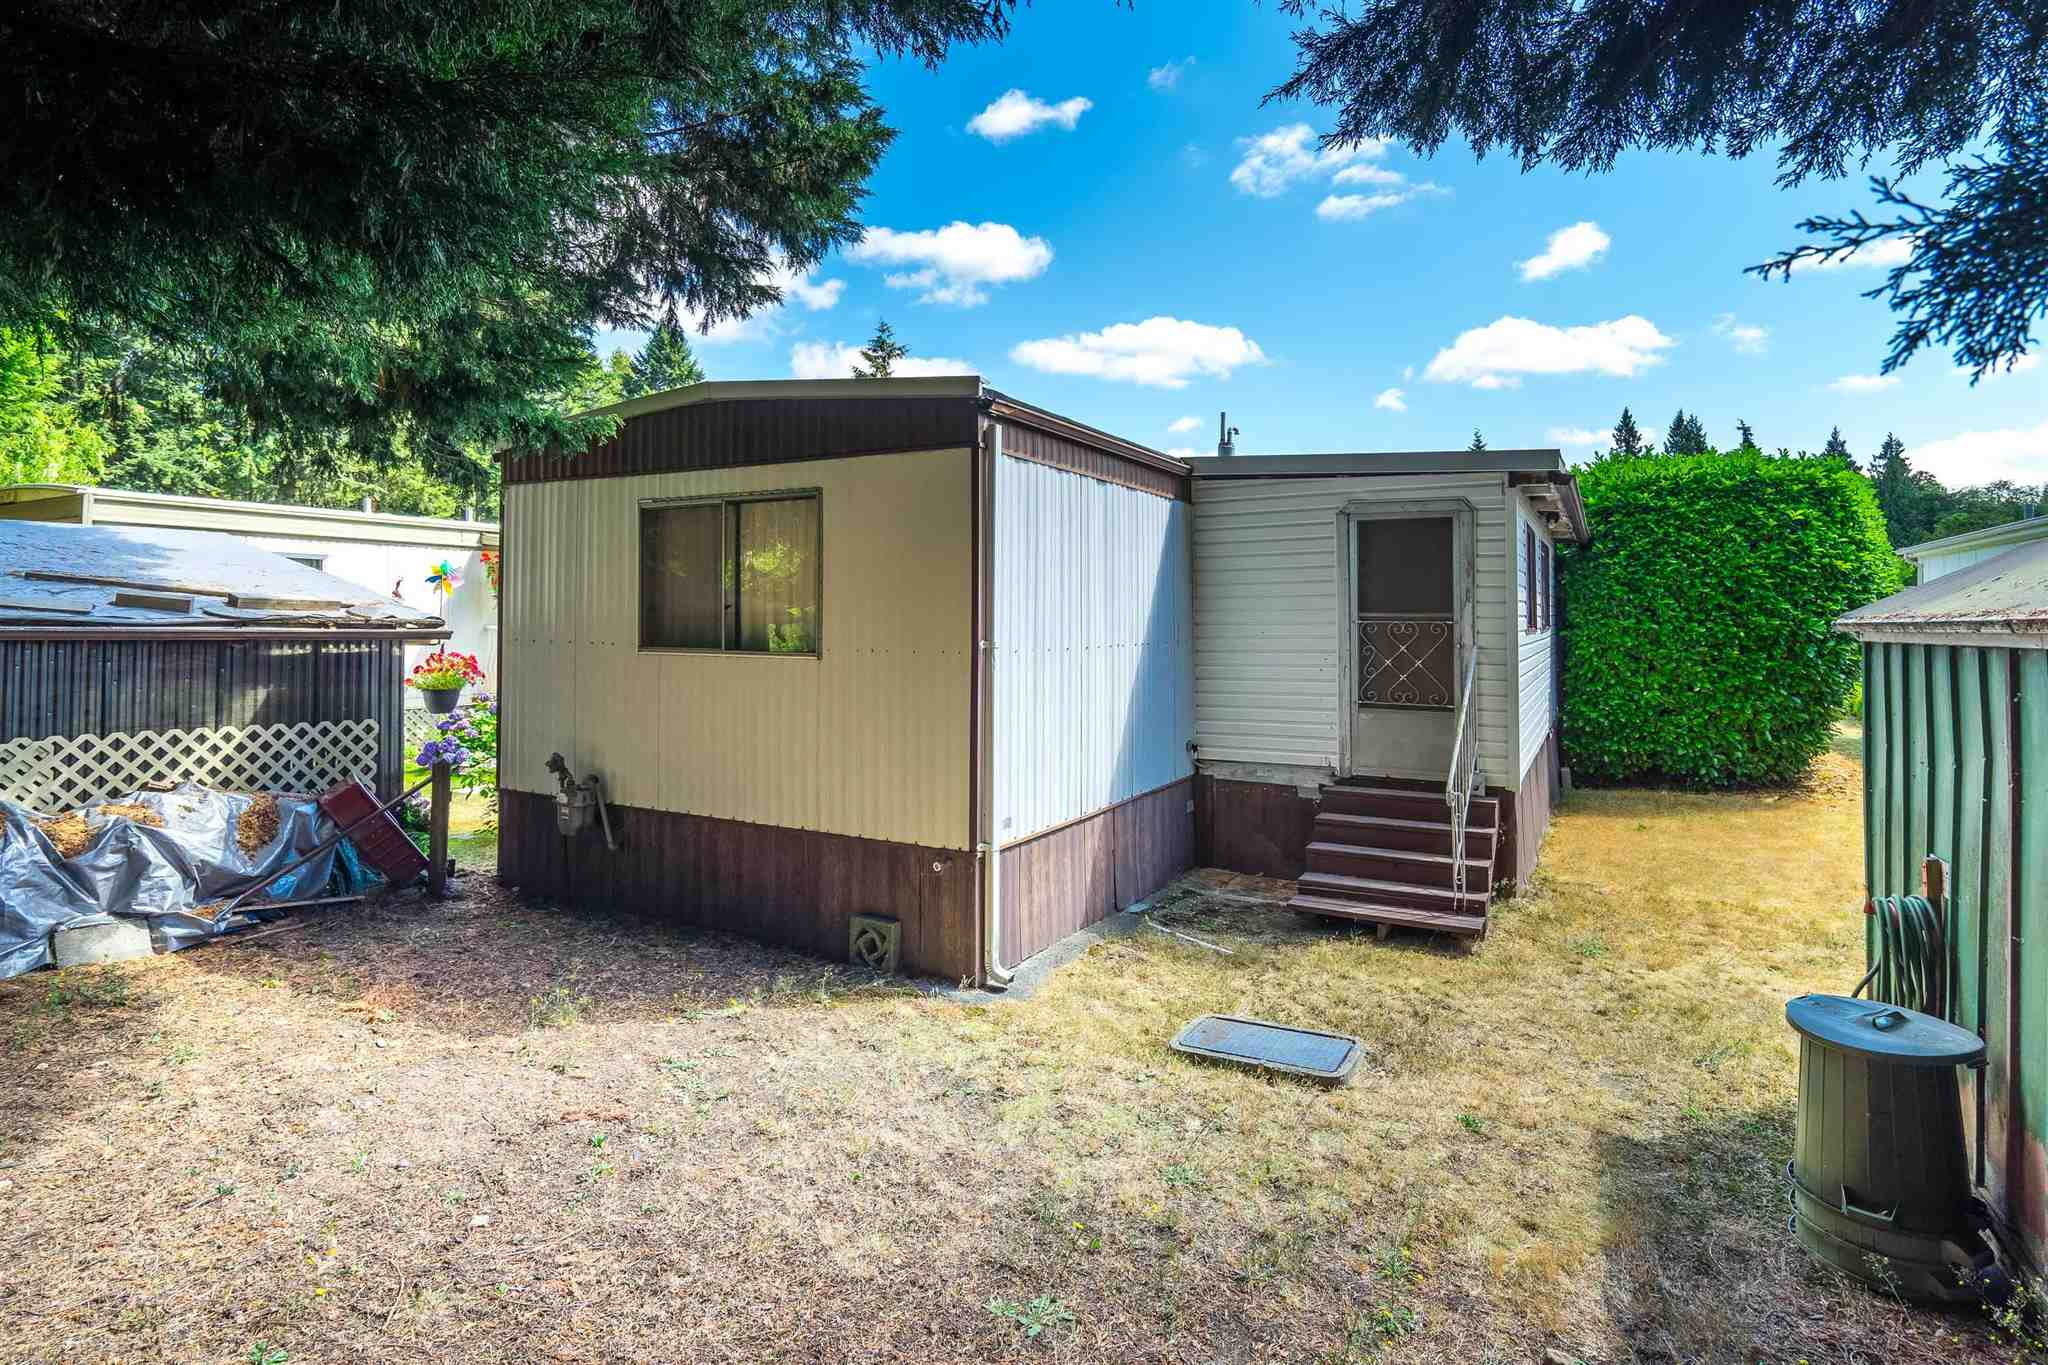 96 2270 196 STREET - Brookswood Langley Manufactured for sale, 3 Bedrooms (R2603849) - #25